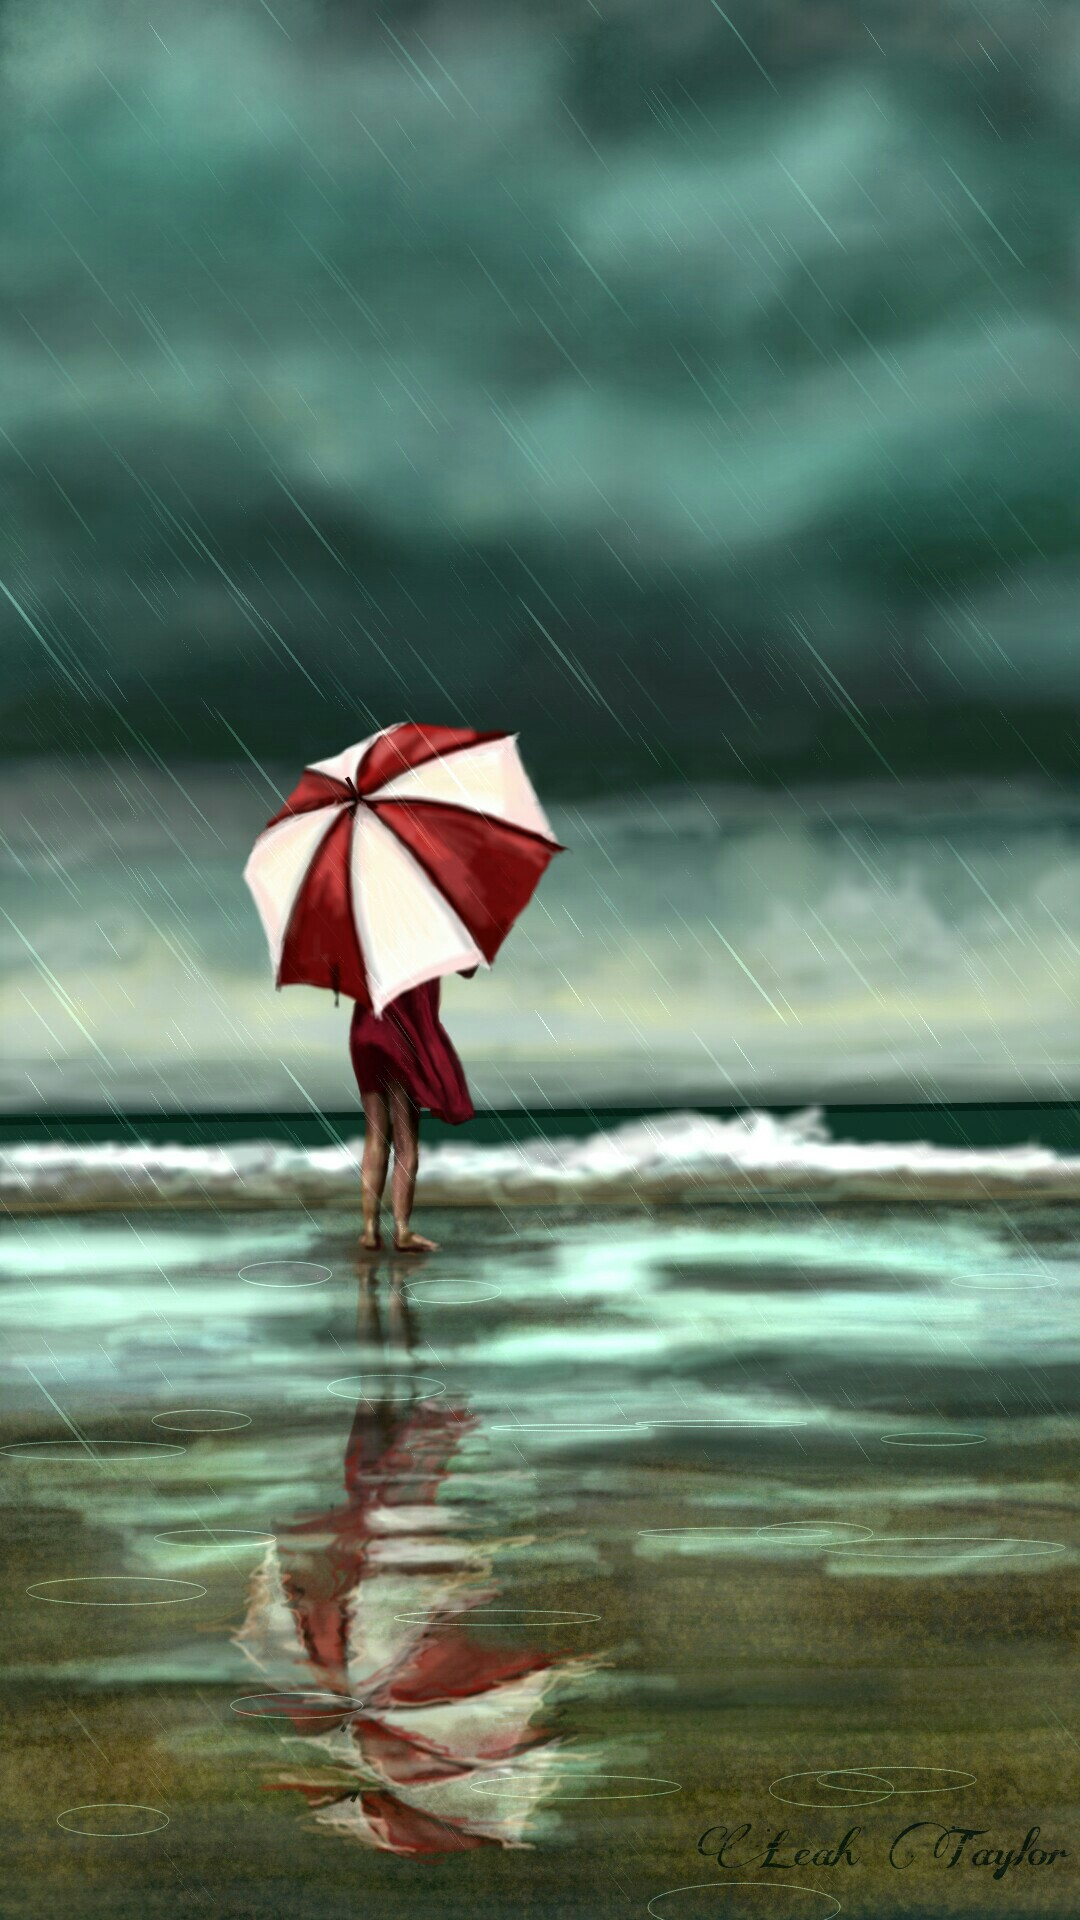 Dcrainyday Alone In The Face Of A Rainstorm See The